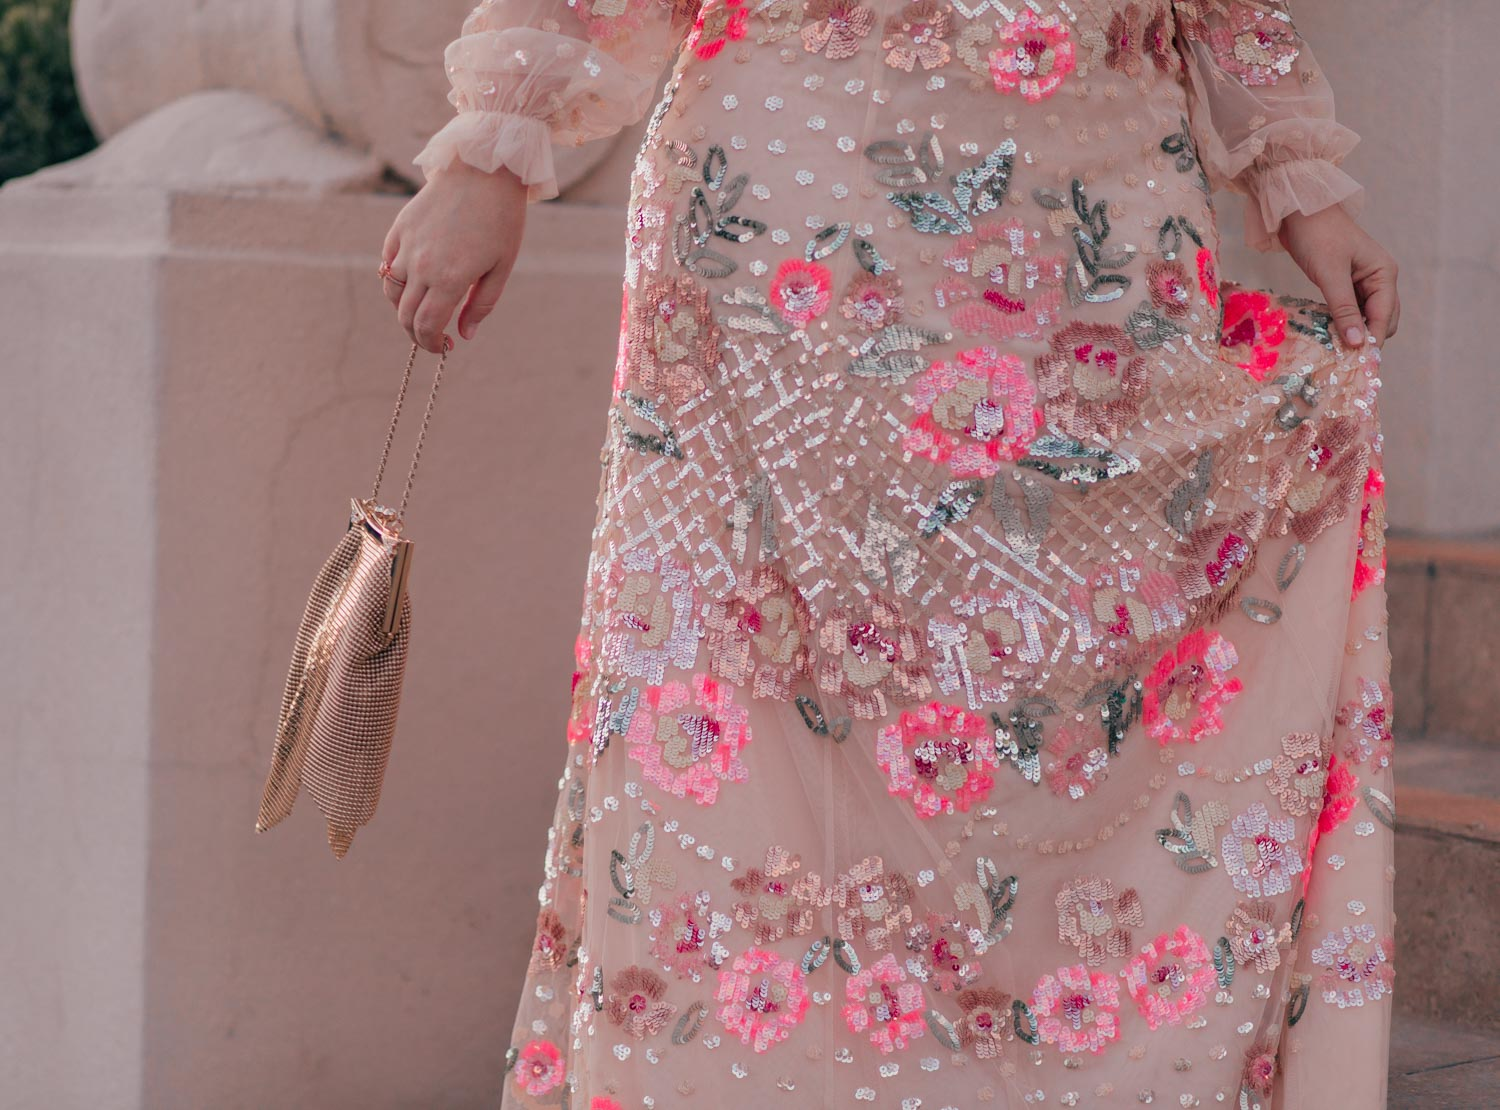 Elizabeth Hugen of Lizzie in Lace shares a floral sequin Needle and Thread dress along with her spring bucket list